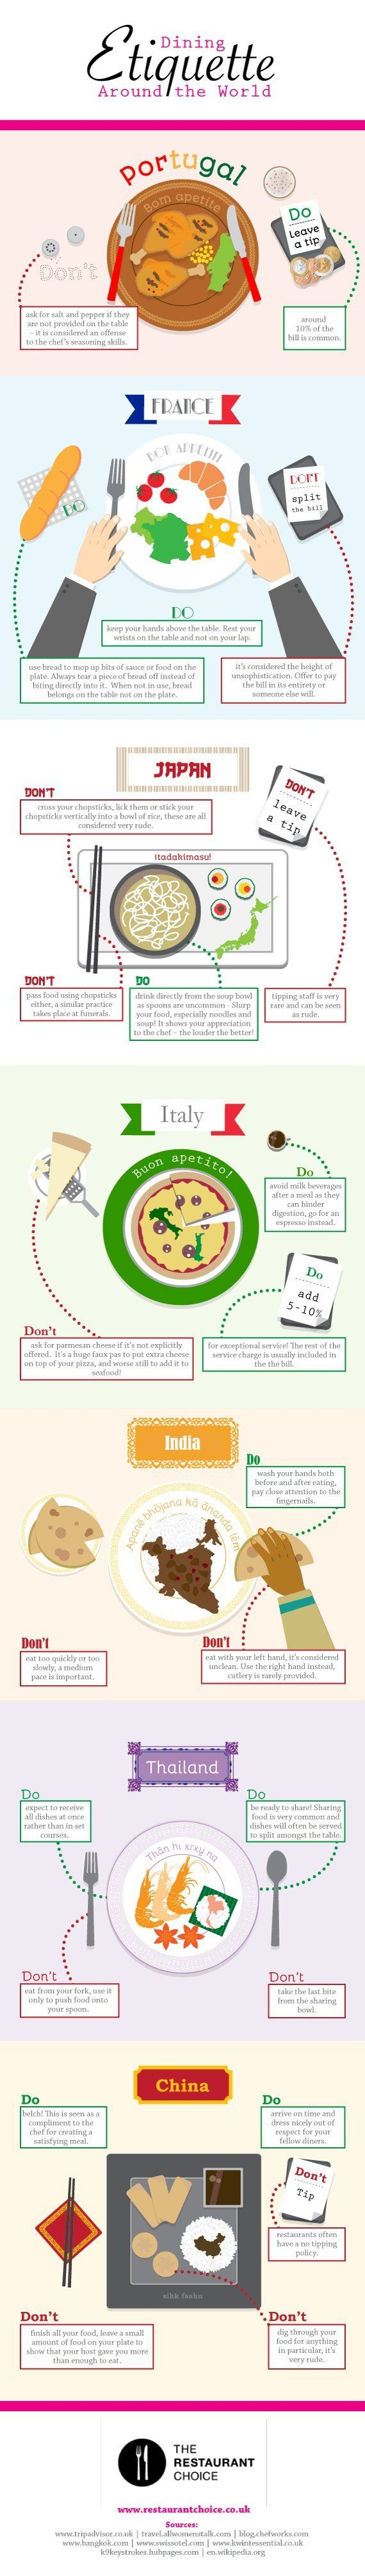 Every International Dining Rule You Need To Know, In One Chart. http://www.huffingtonpost.com/2015/06/29/dining-around-the-world-rules-for-dinner-international_n_7648134.html?utm_hp_ref=tw